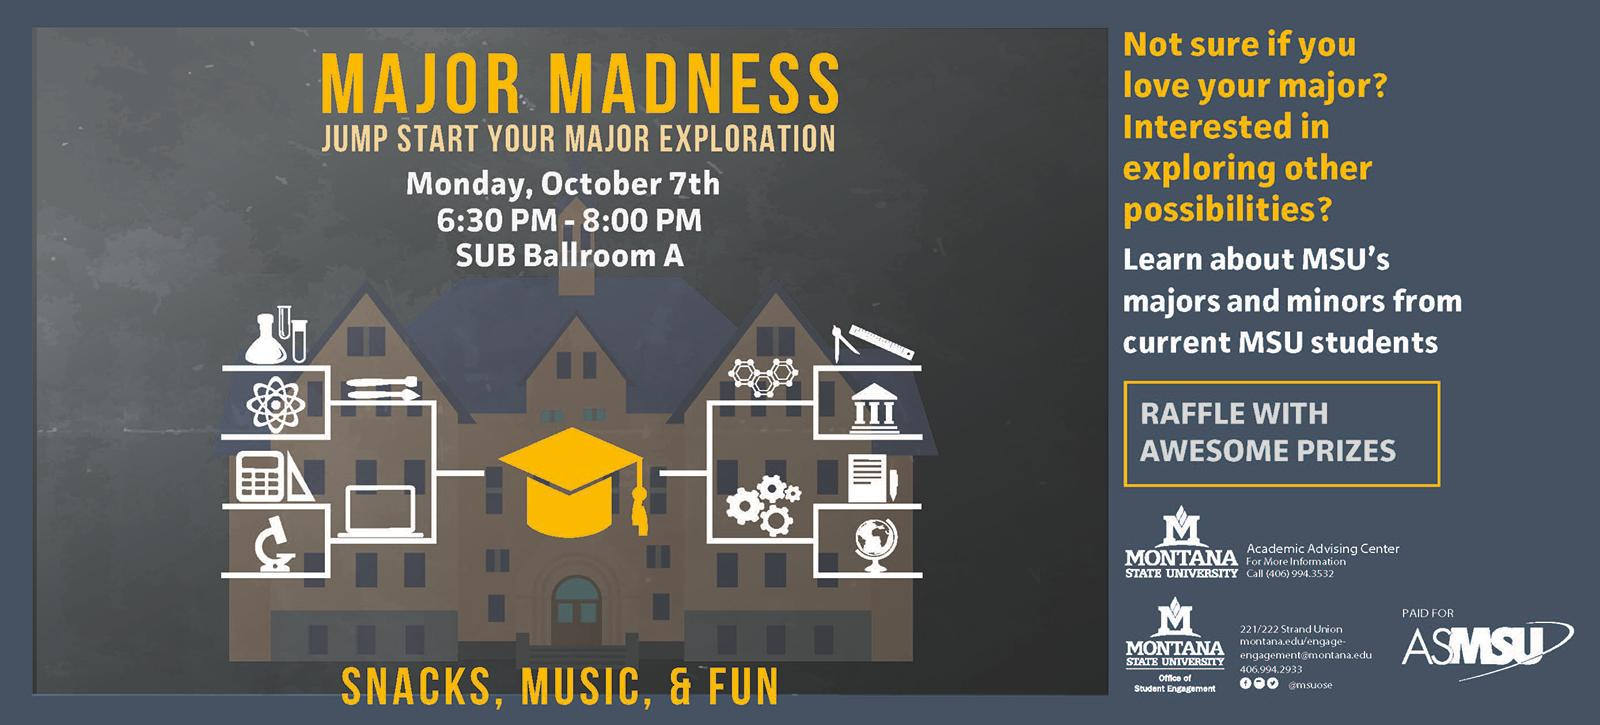 Poster to advertise Major Madness